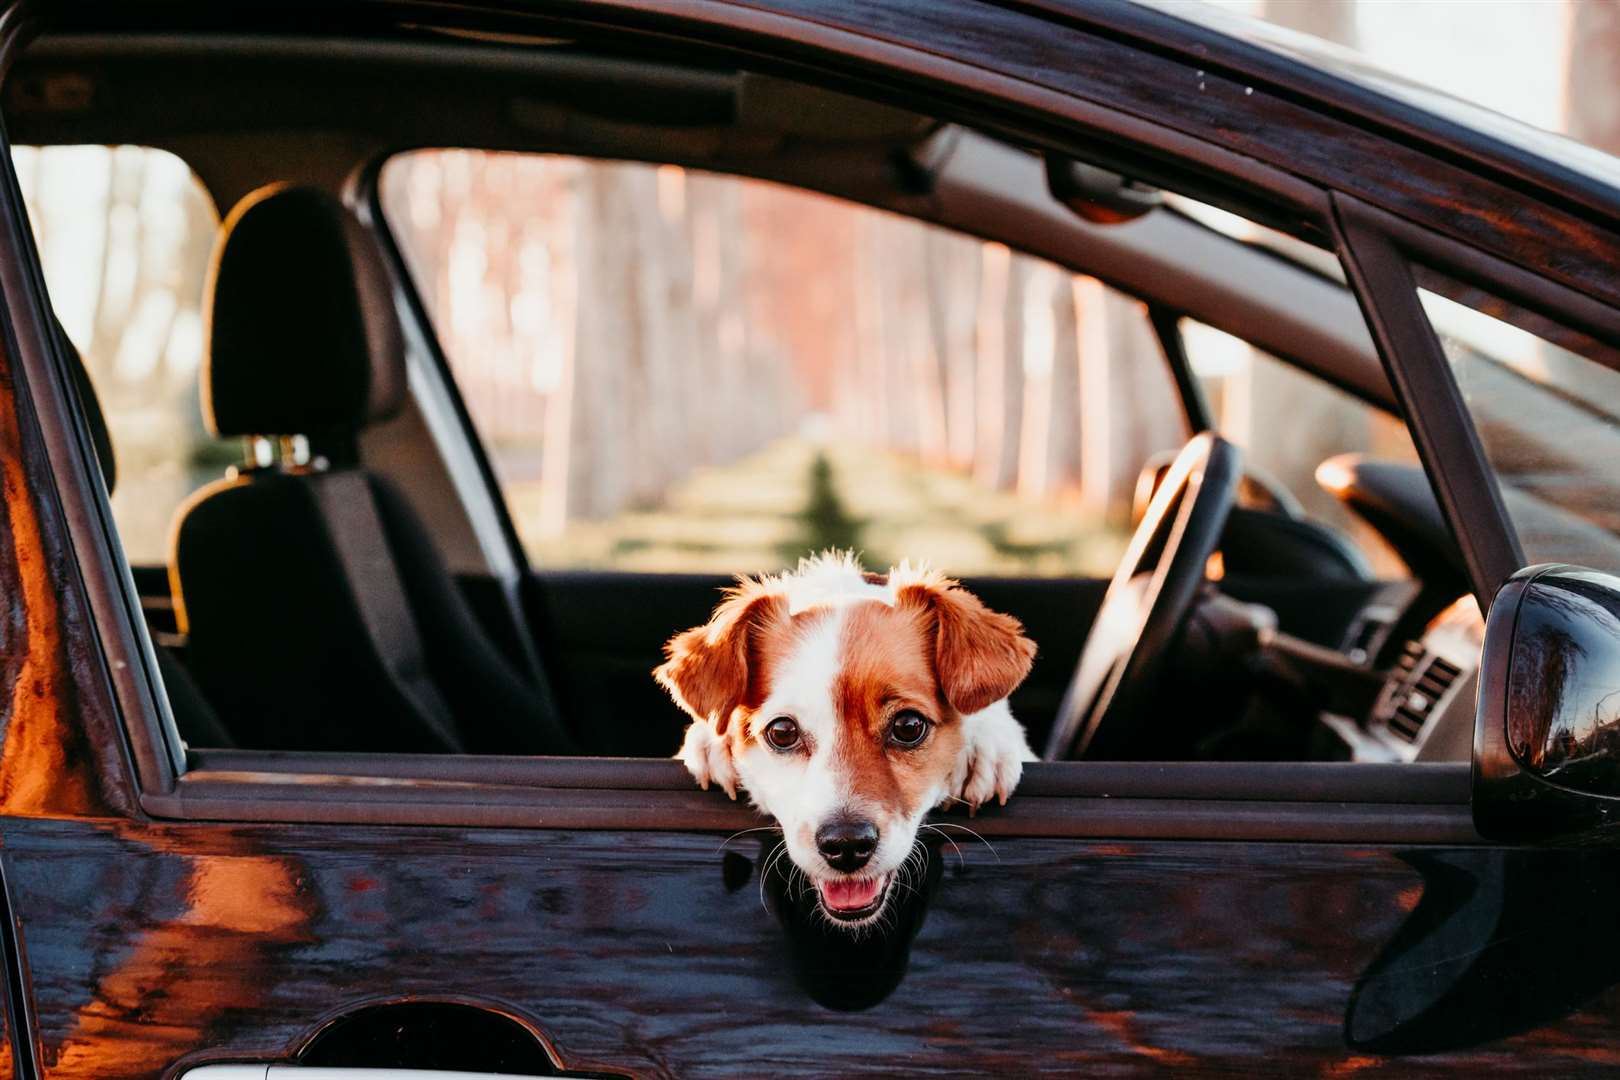 Motorists distracted by their pet being loose in the car risk breaching the Highway Code, invalidating insurance or being in trouble with the police